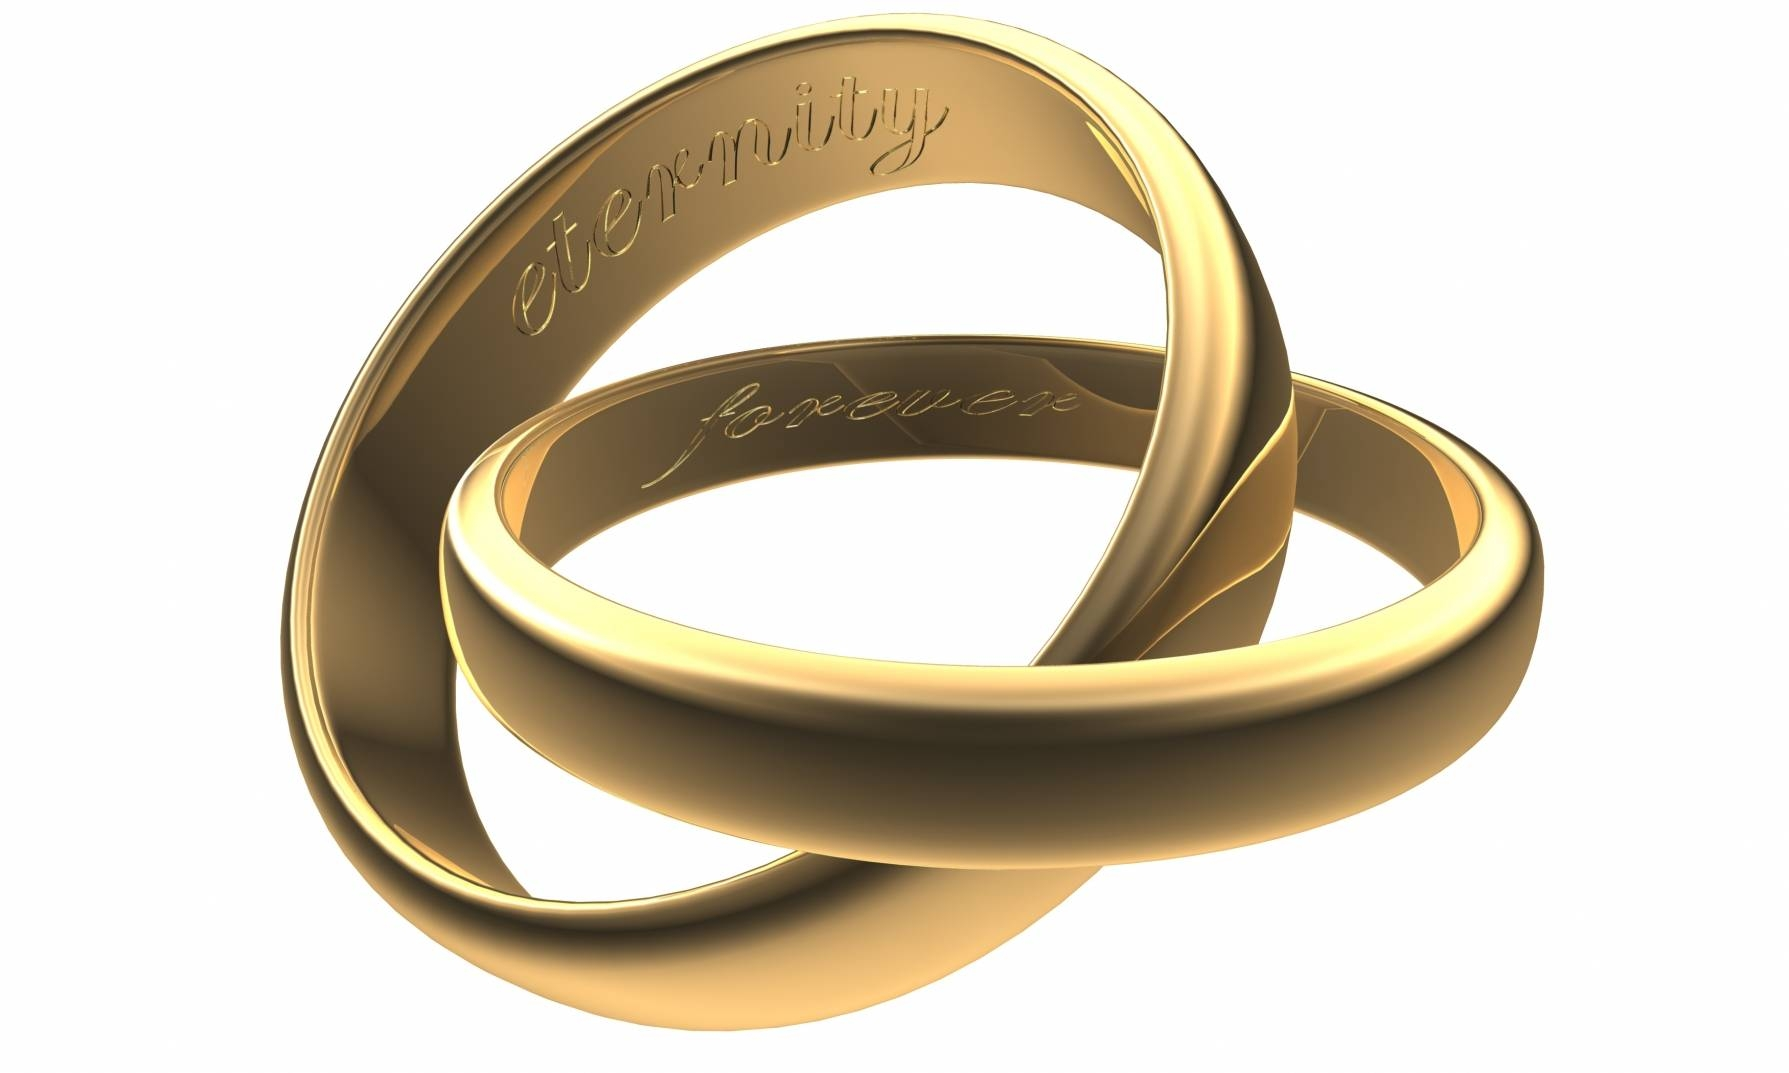 Engraved Wedding Bands | Wedding Band Engraving Pertaining To Wedding Rings With Name Engraved (View 8 of 15)